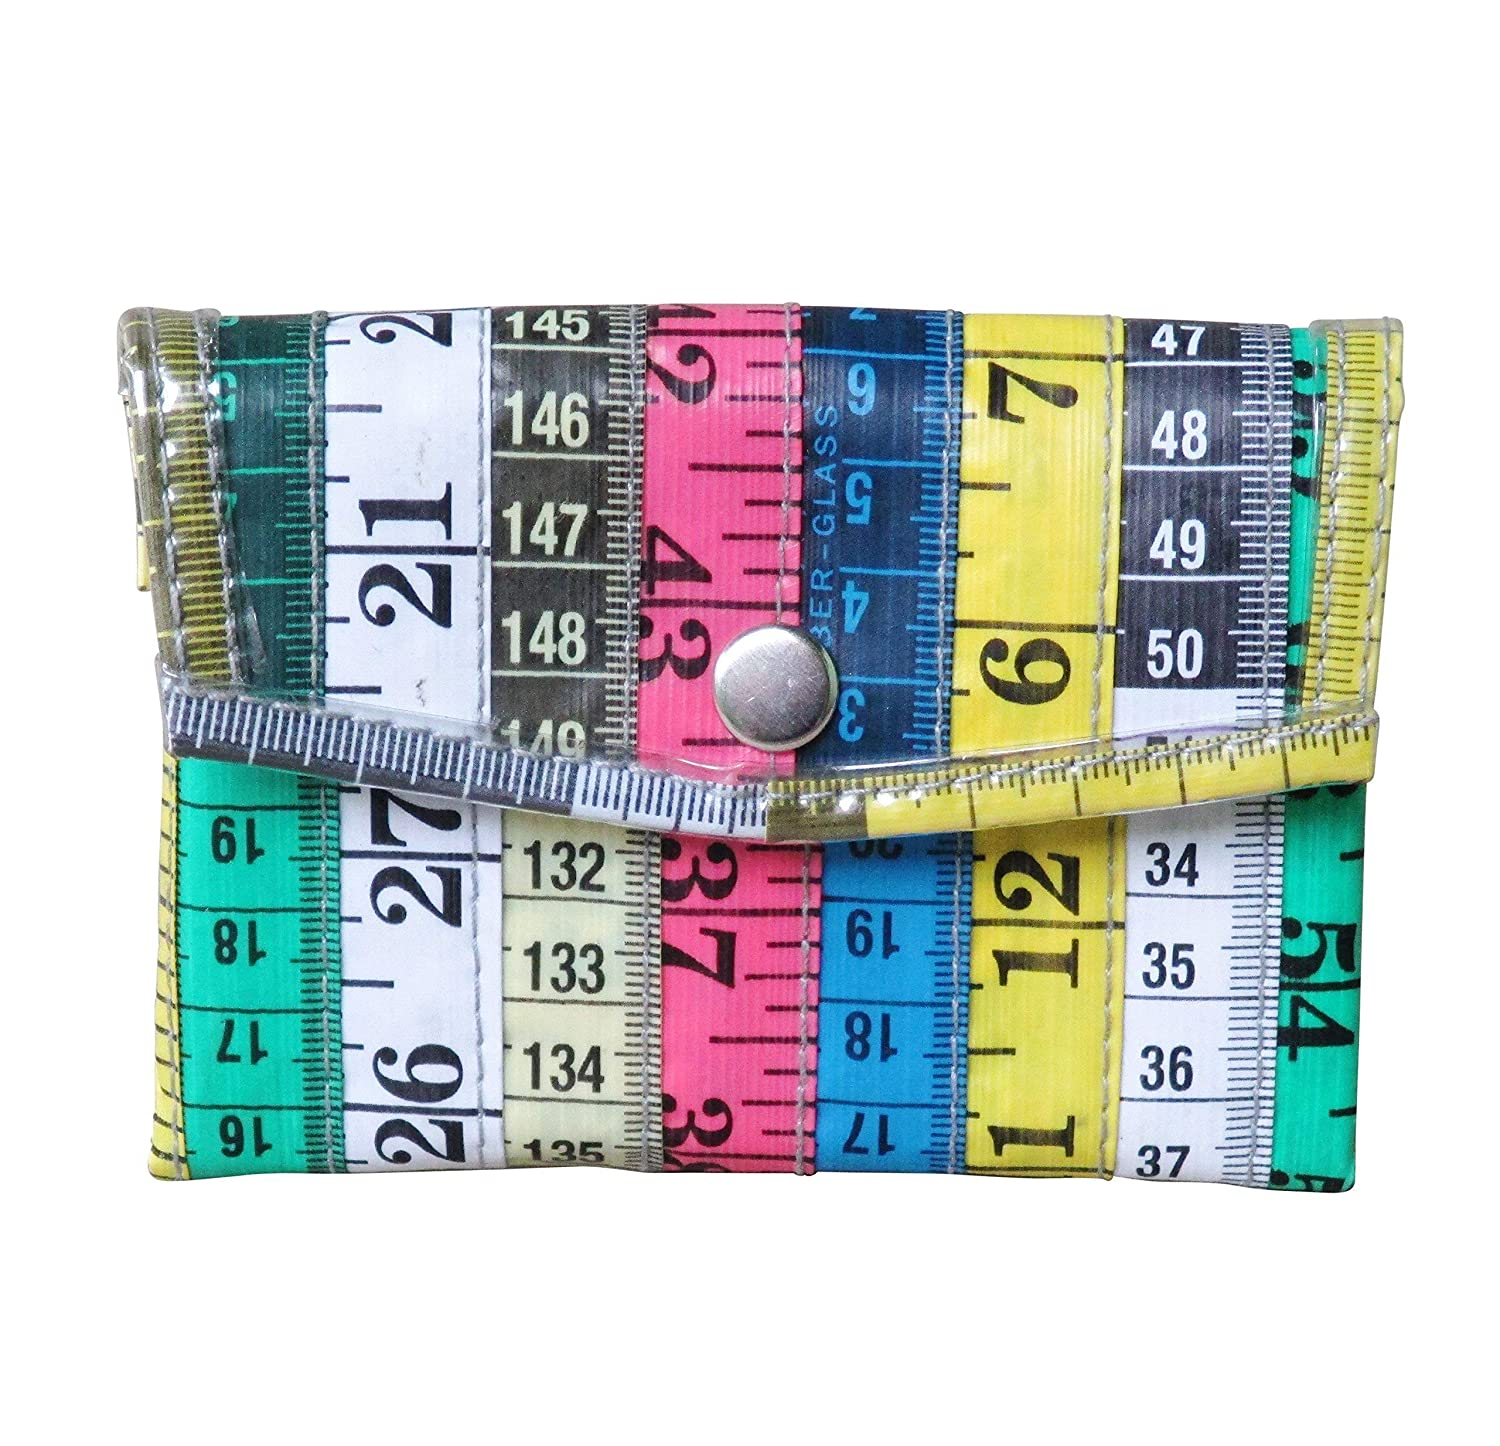 Amazon Com Large Snap Coin Purse Made From Measuring Tape Gifts For Knitter Sewer Fashion Designer Clothing Design Student Teacher Sewing Hobby Tapes Measure Handmade Art Bag Wallet Coiner Pouch Box Prime